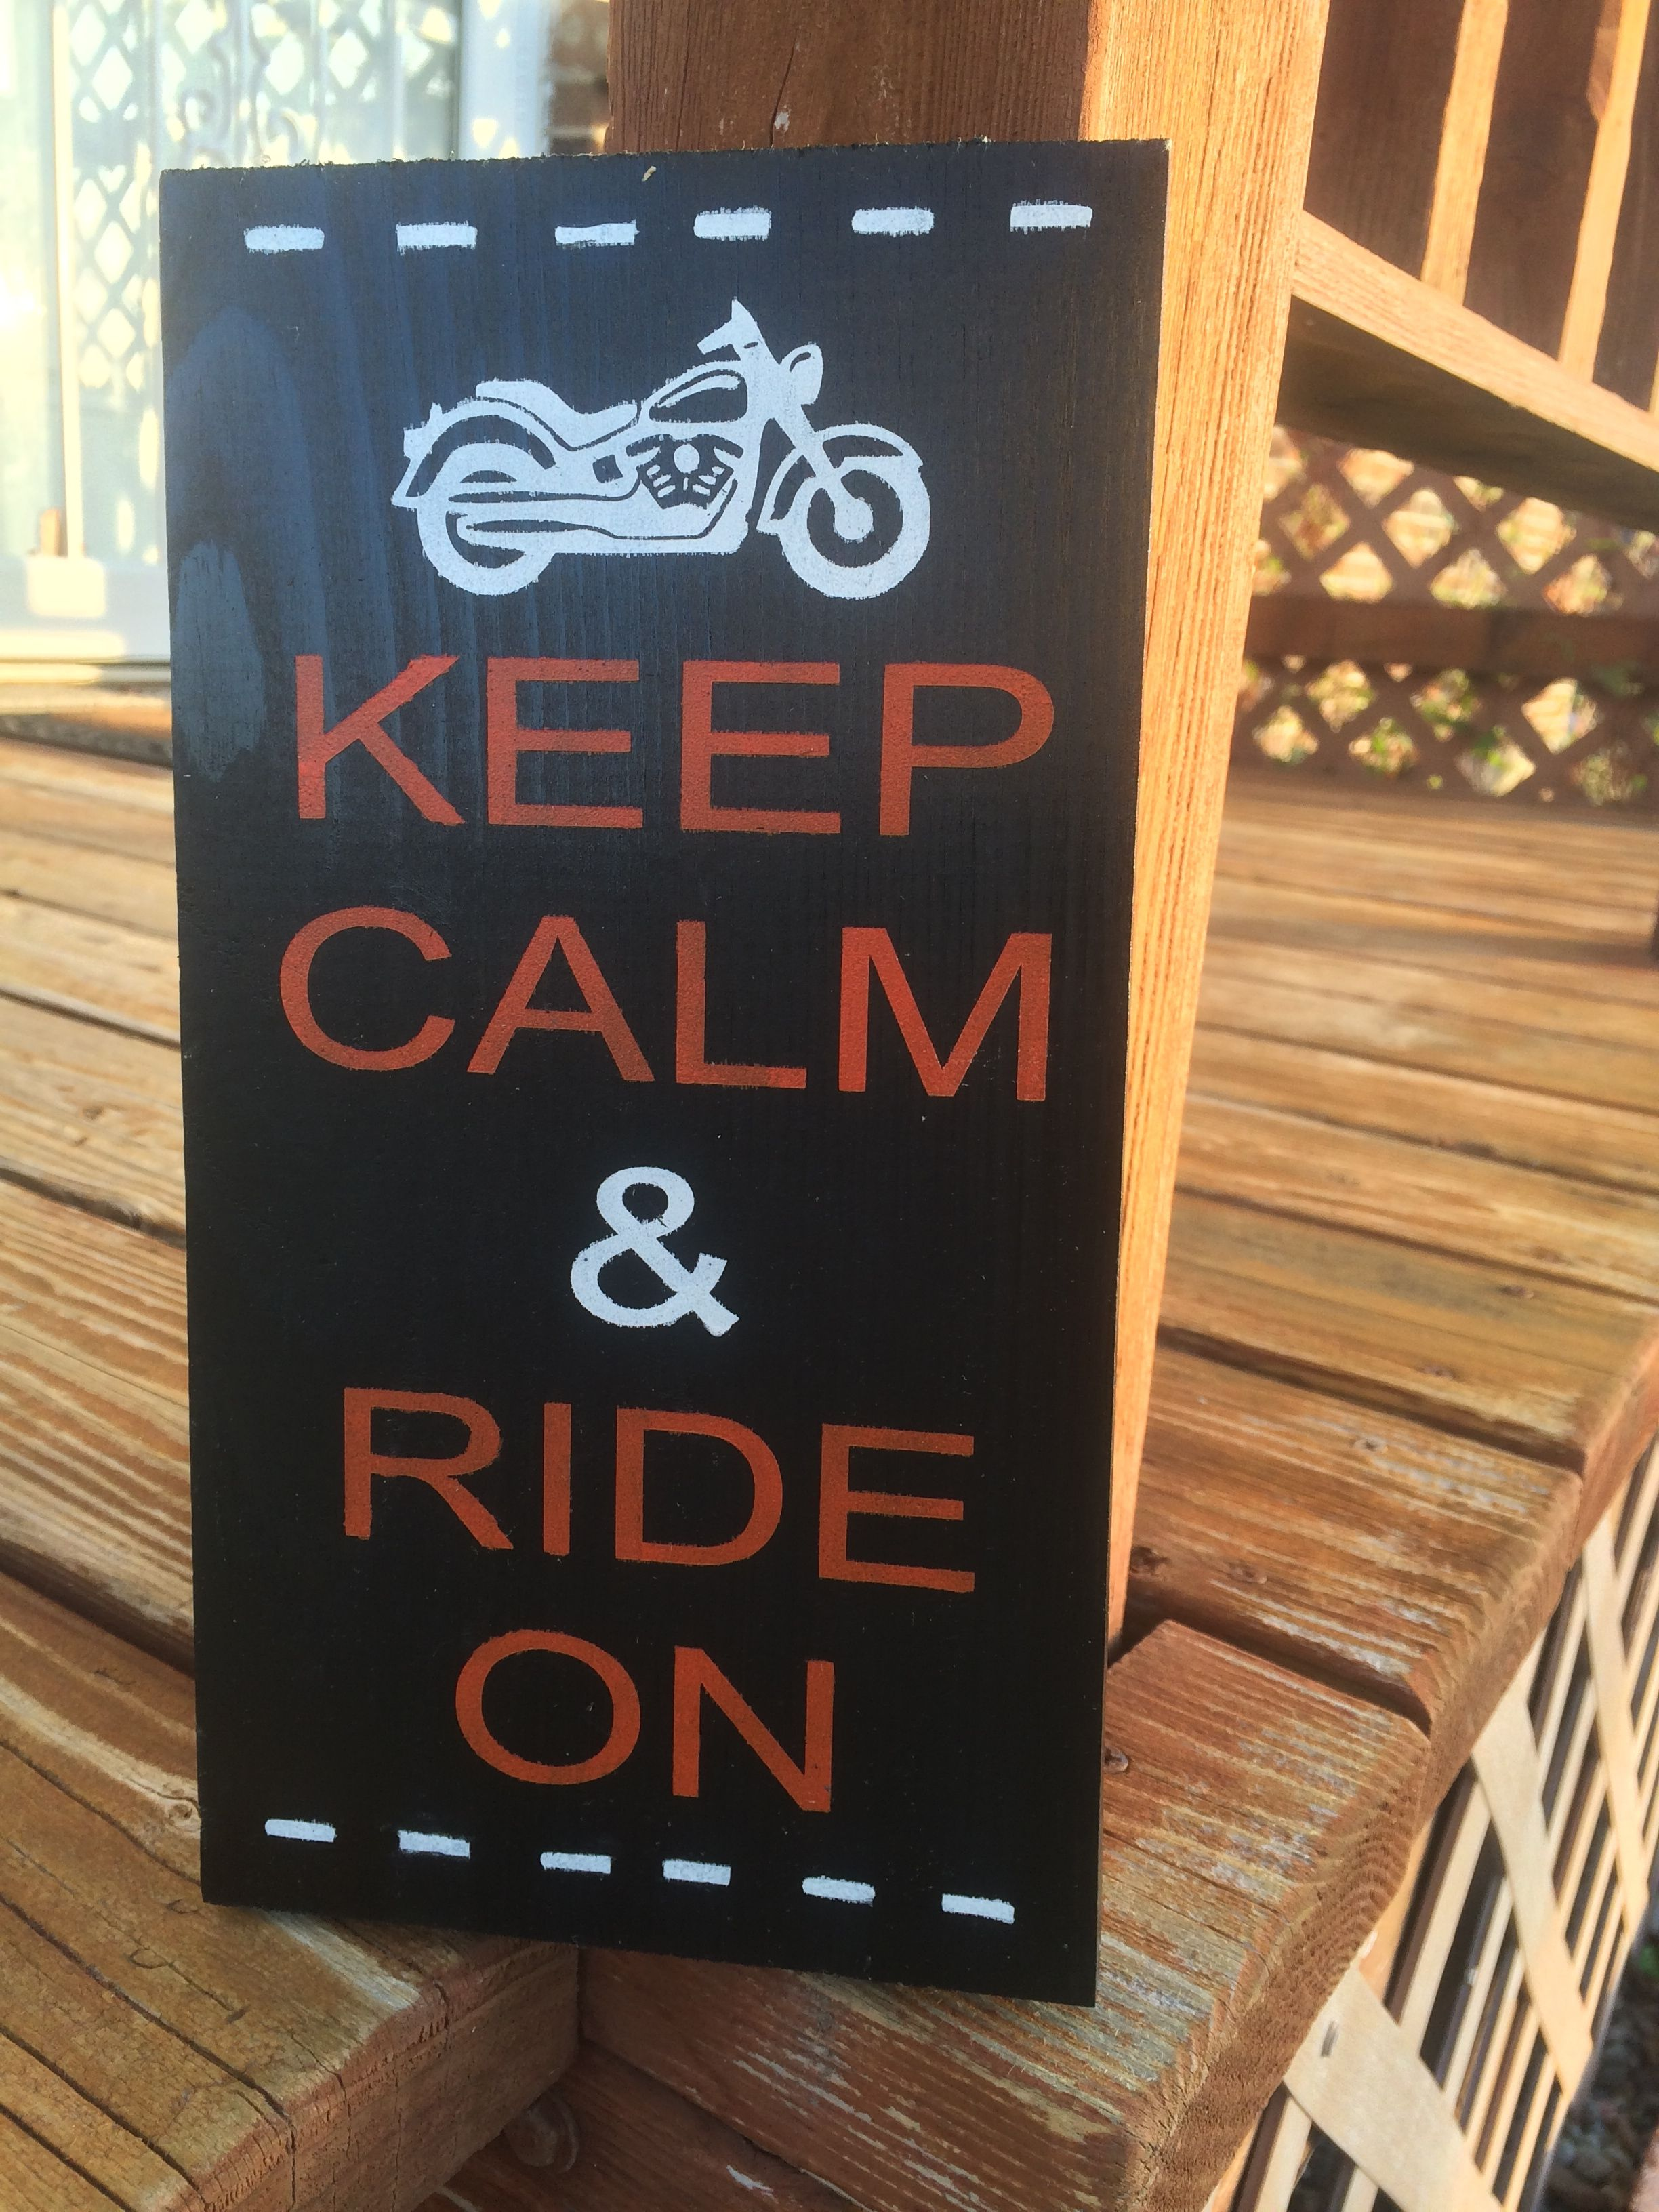 Keep Calm & Ride On,,, Stergis is coming up along with the nice weather! What a perfect way to start off Summer 2014!! Order yours at www.charliebsdesigns.etsy.com